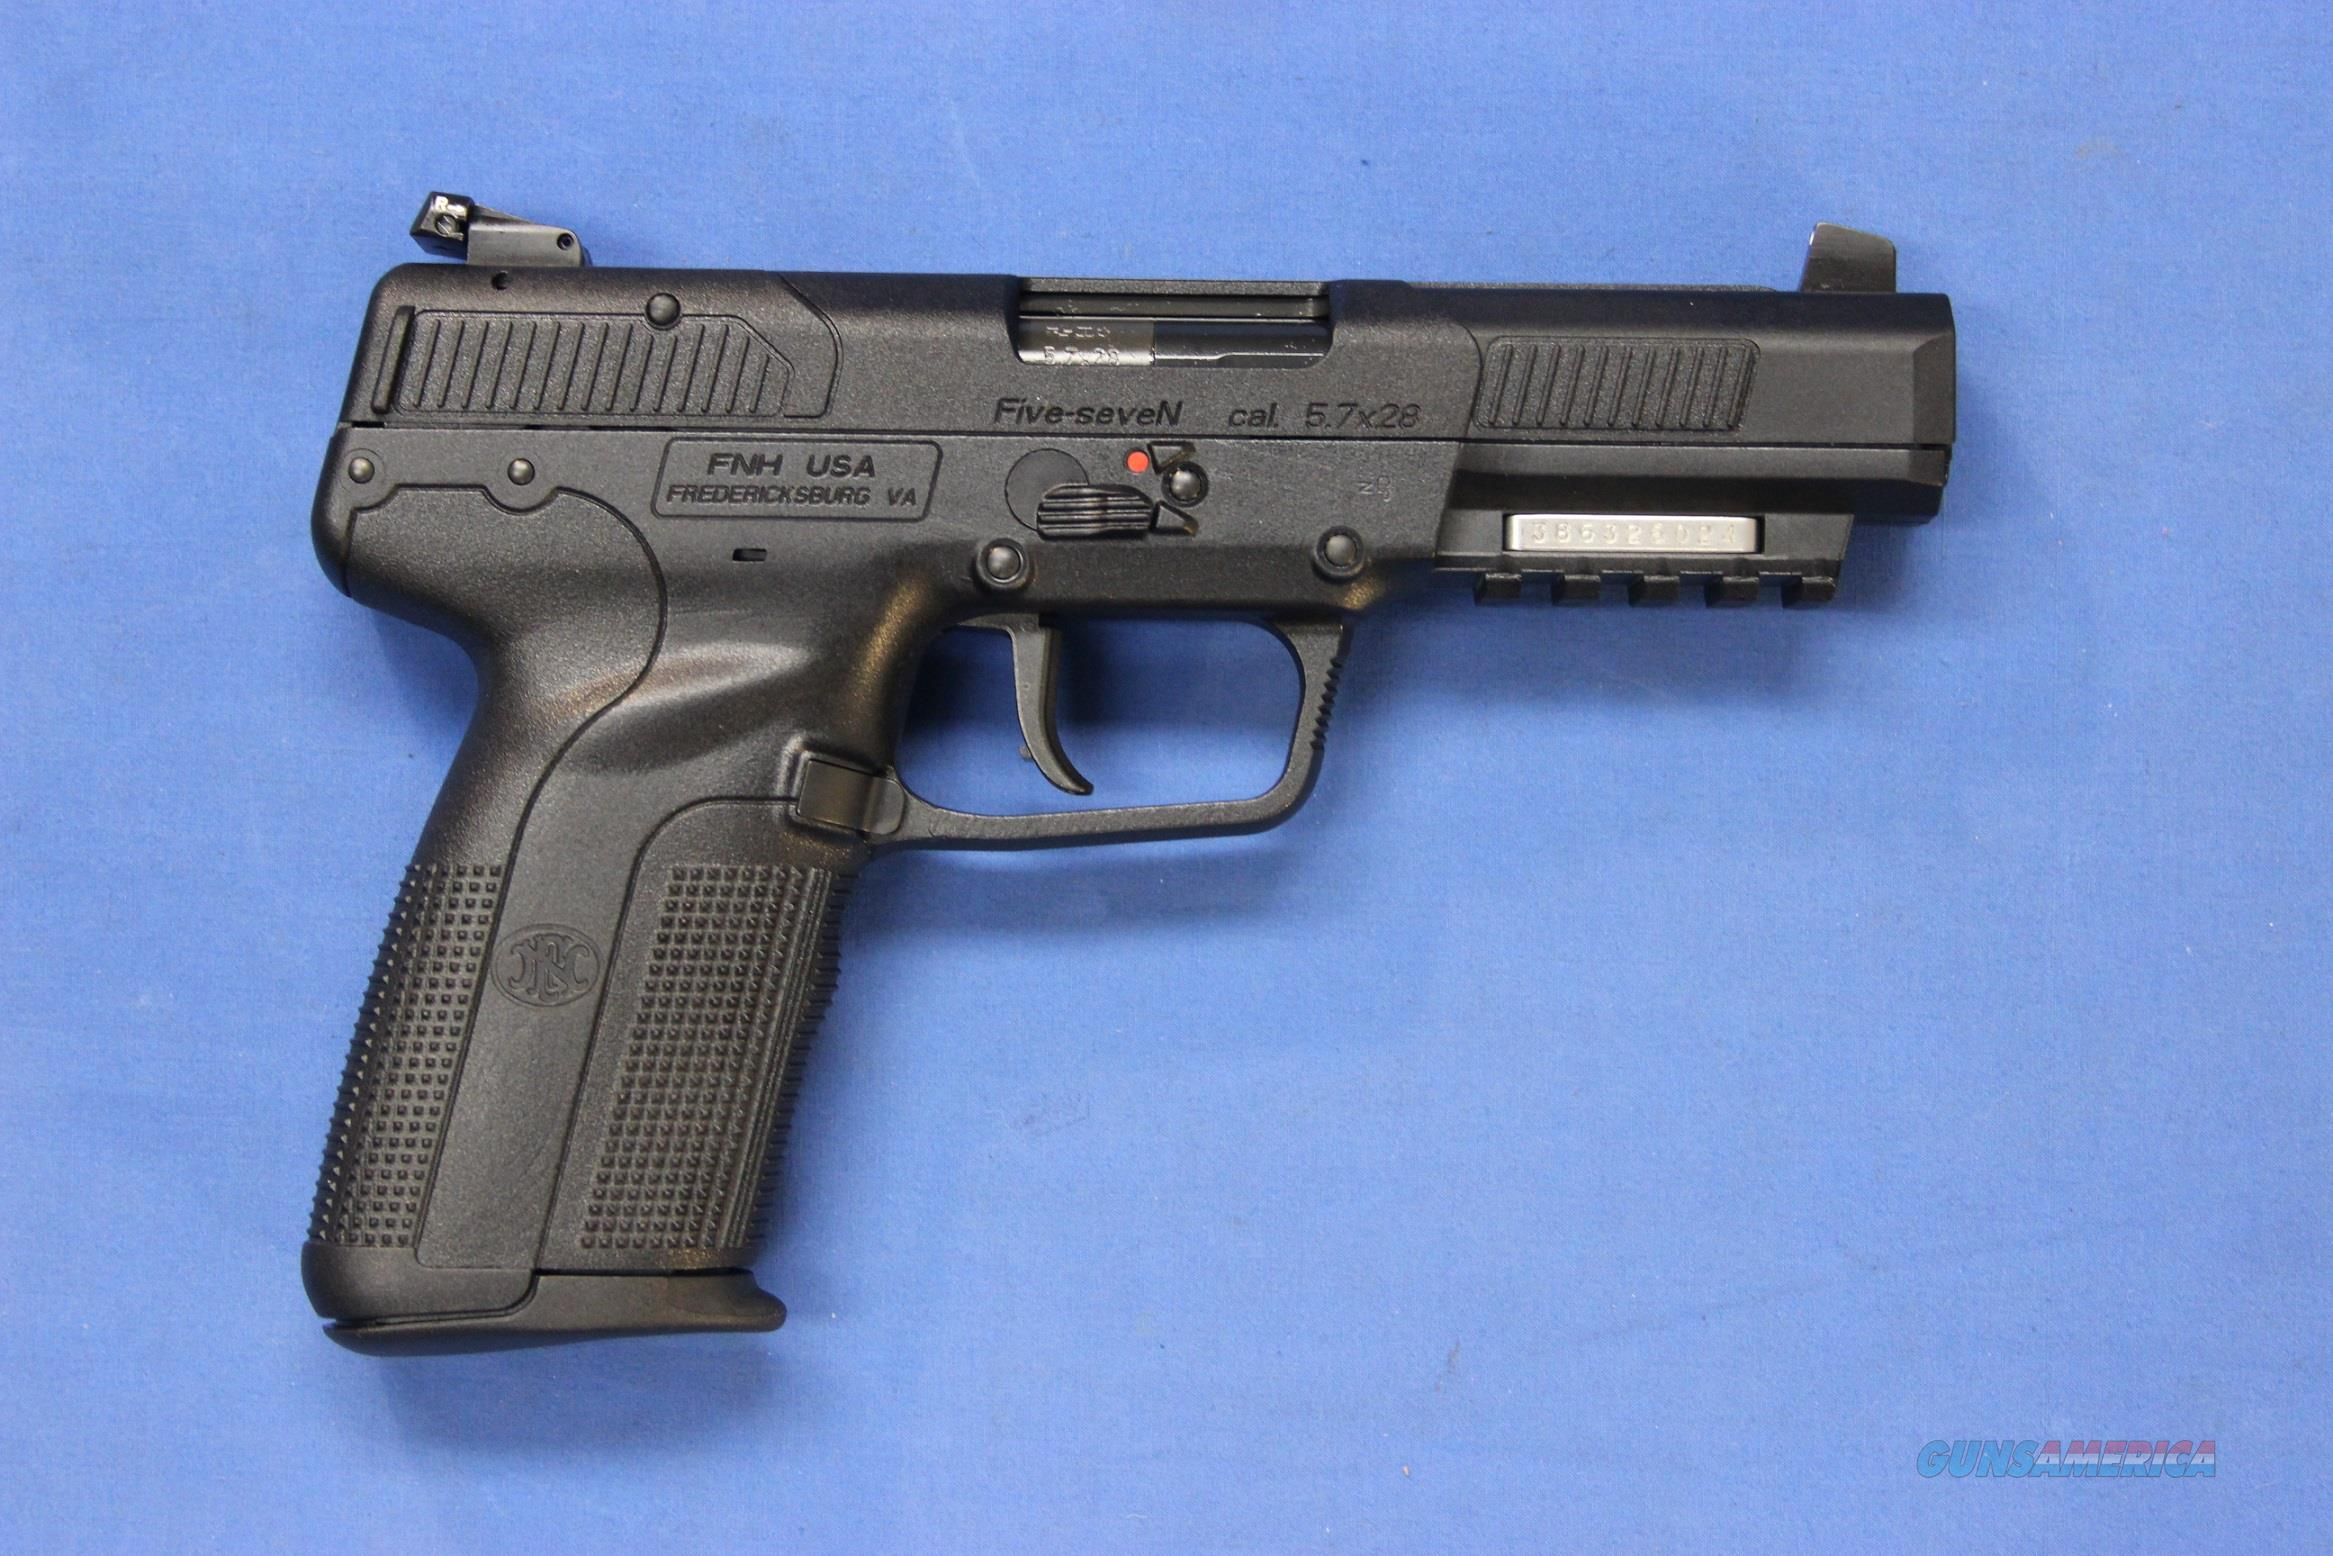 FN (FNH) FIVE-SEVEN PISTOL 5.7x28mm - NEW!  Guns > Pistols > FNH - Fabrique Nationale (FN) Pistols > FiveSeven